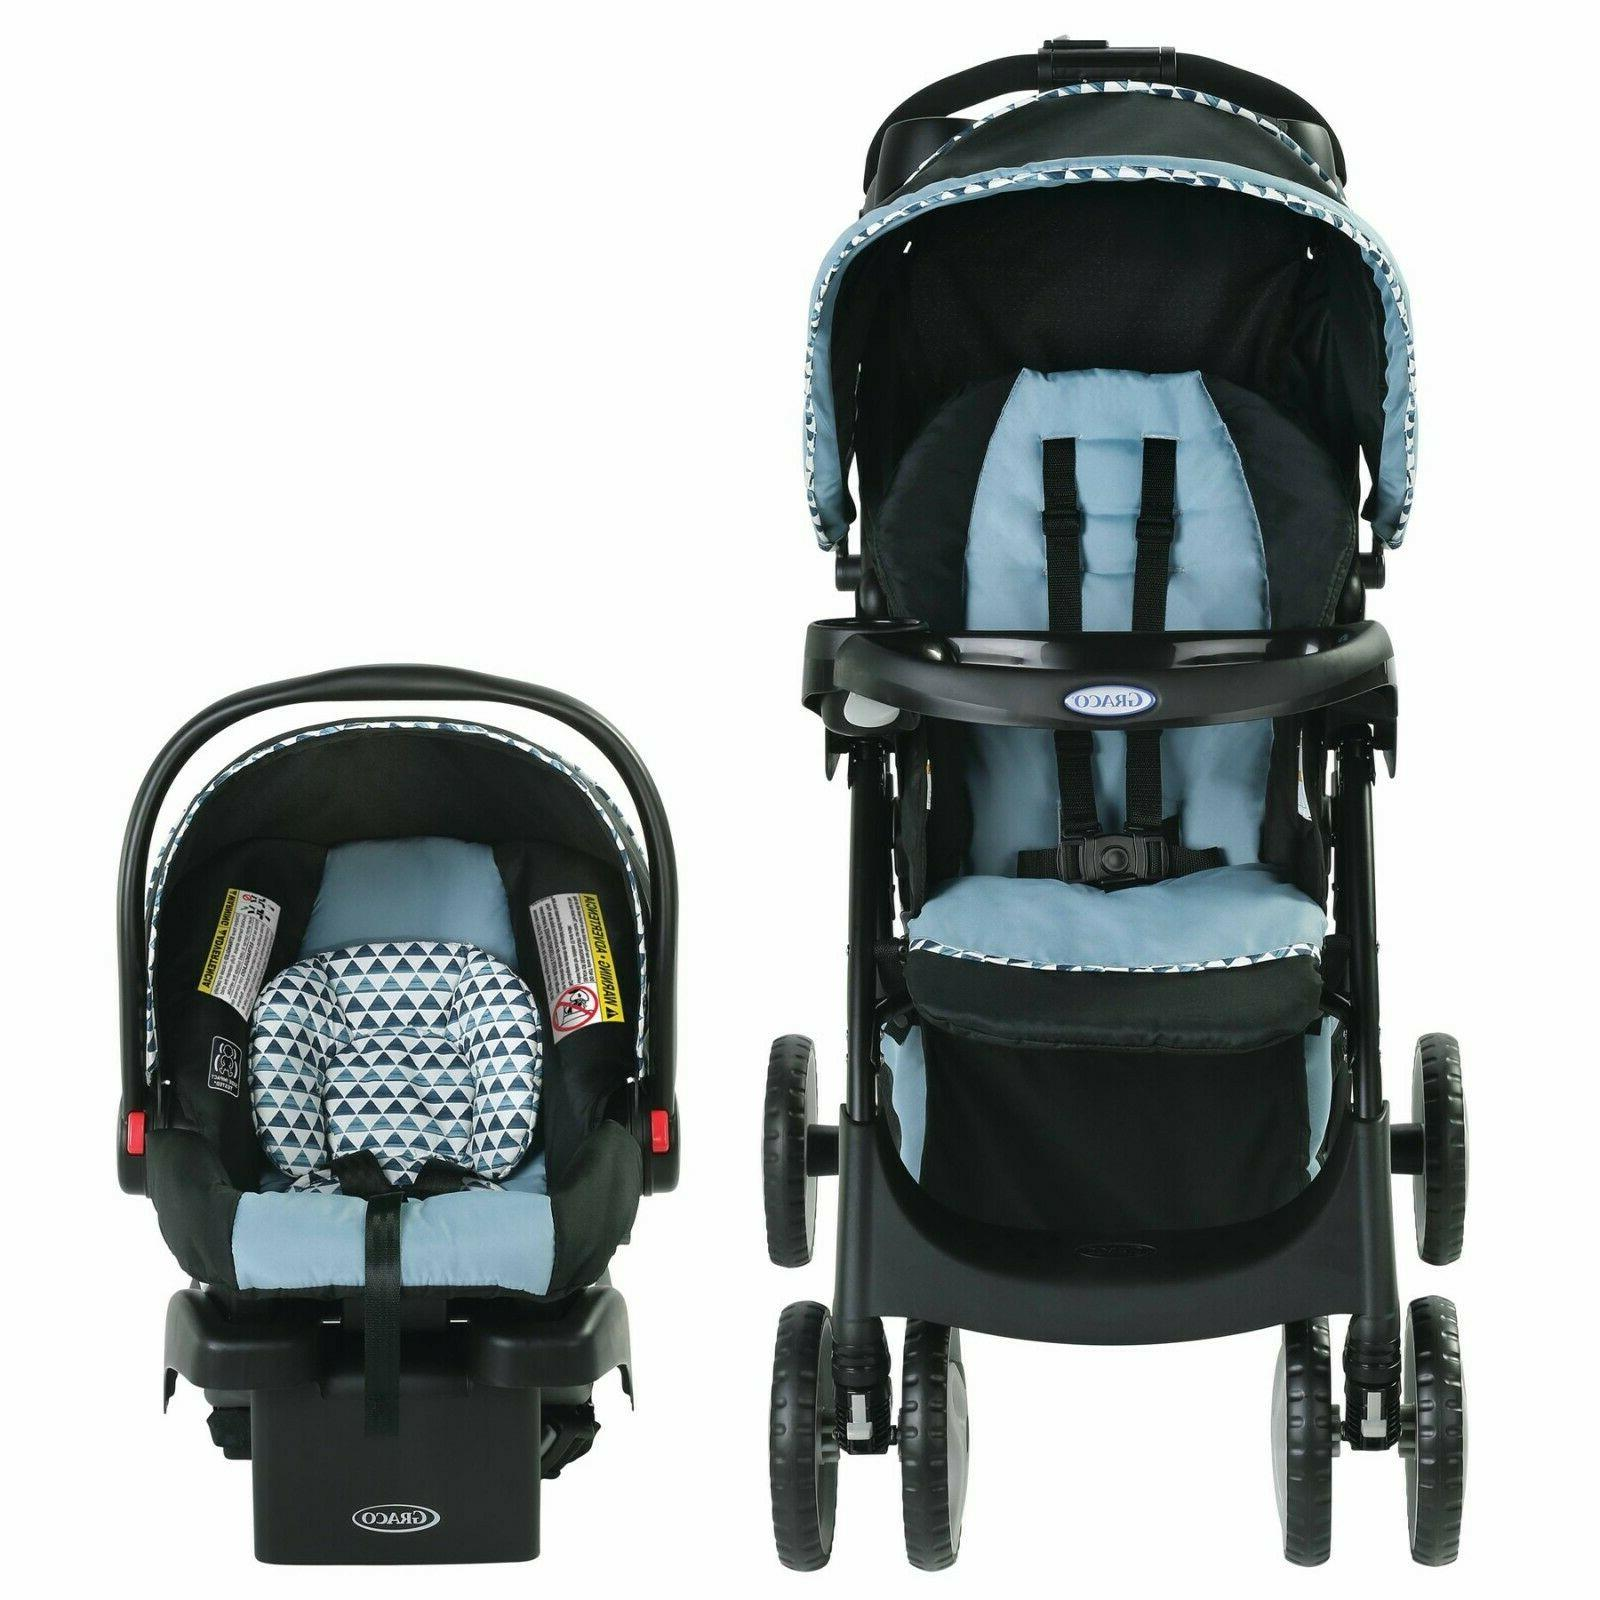 Stroller Travel System with Crib Portable